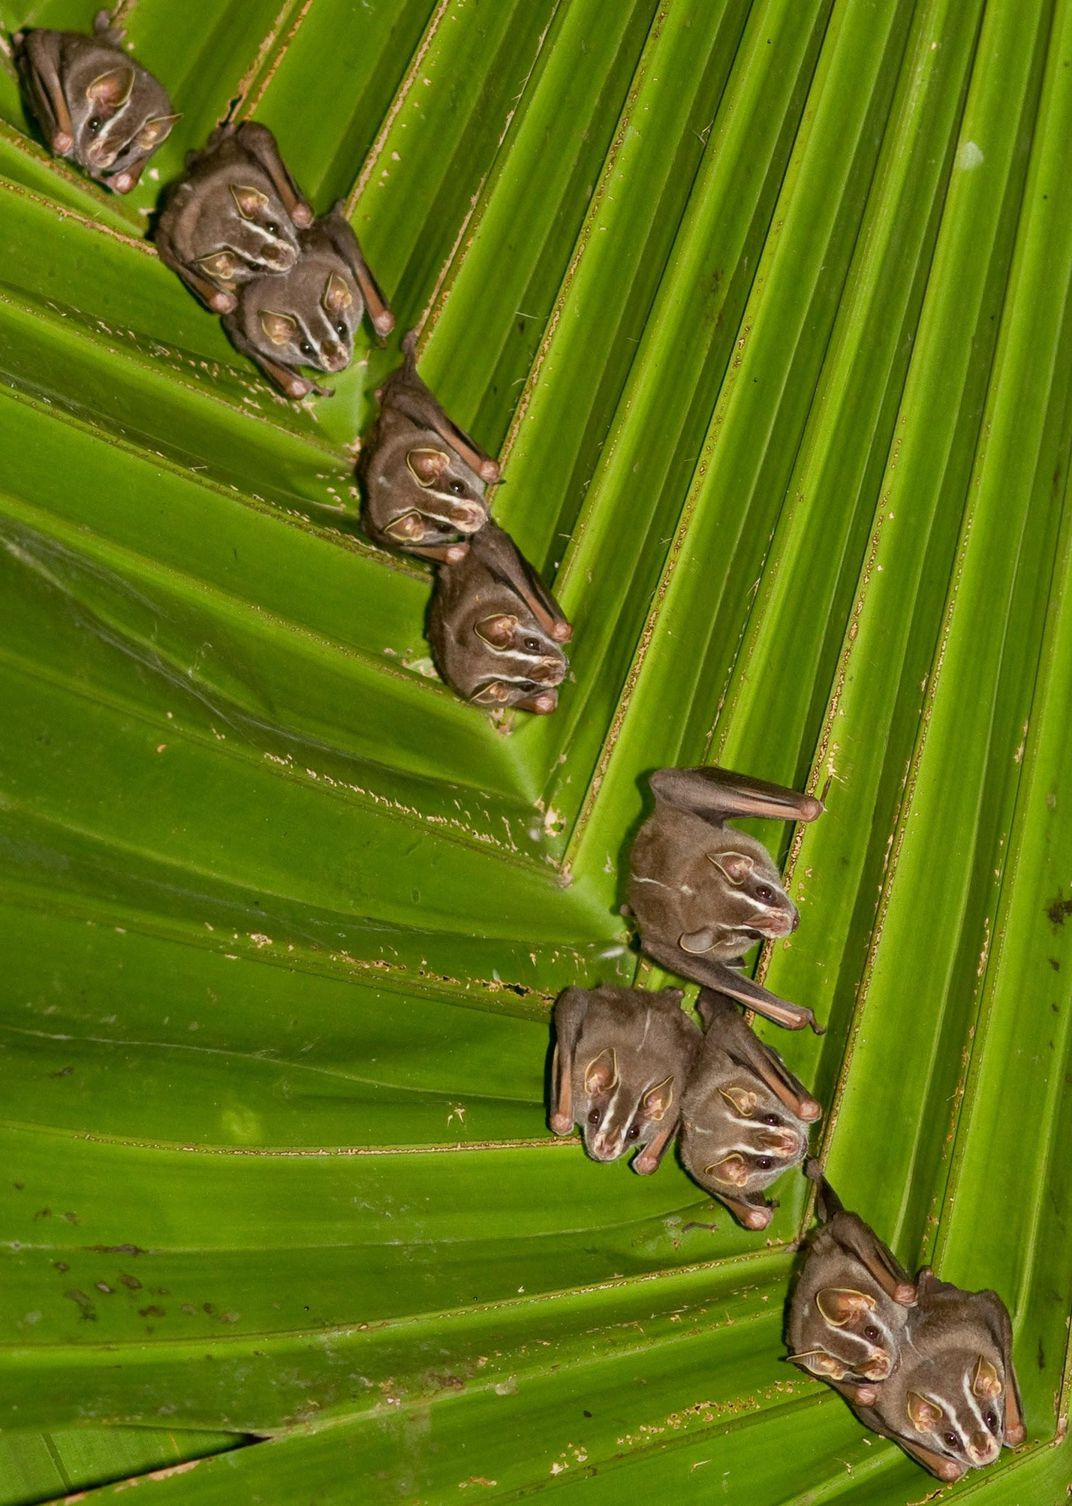 Small brown bats in the ridges of a green leaf.